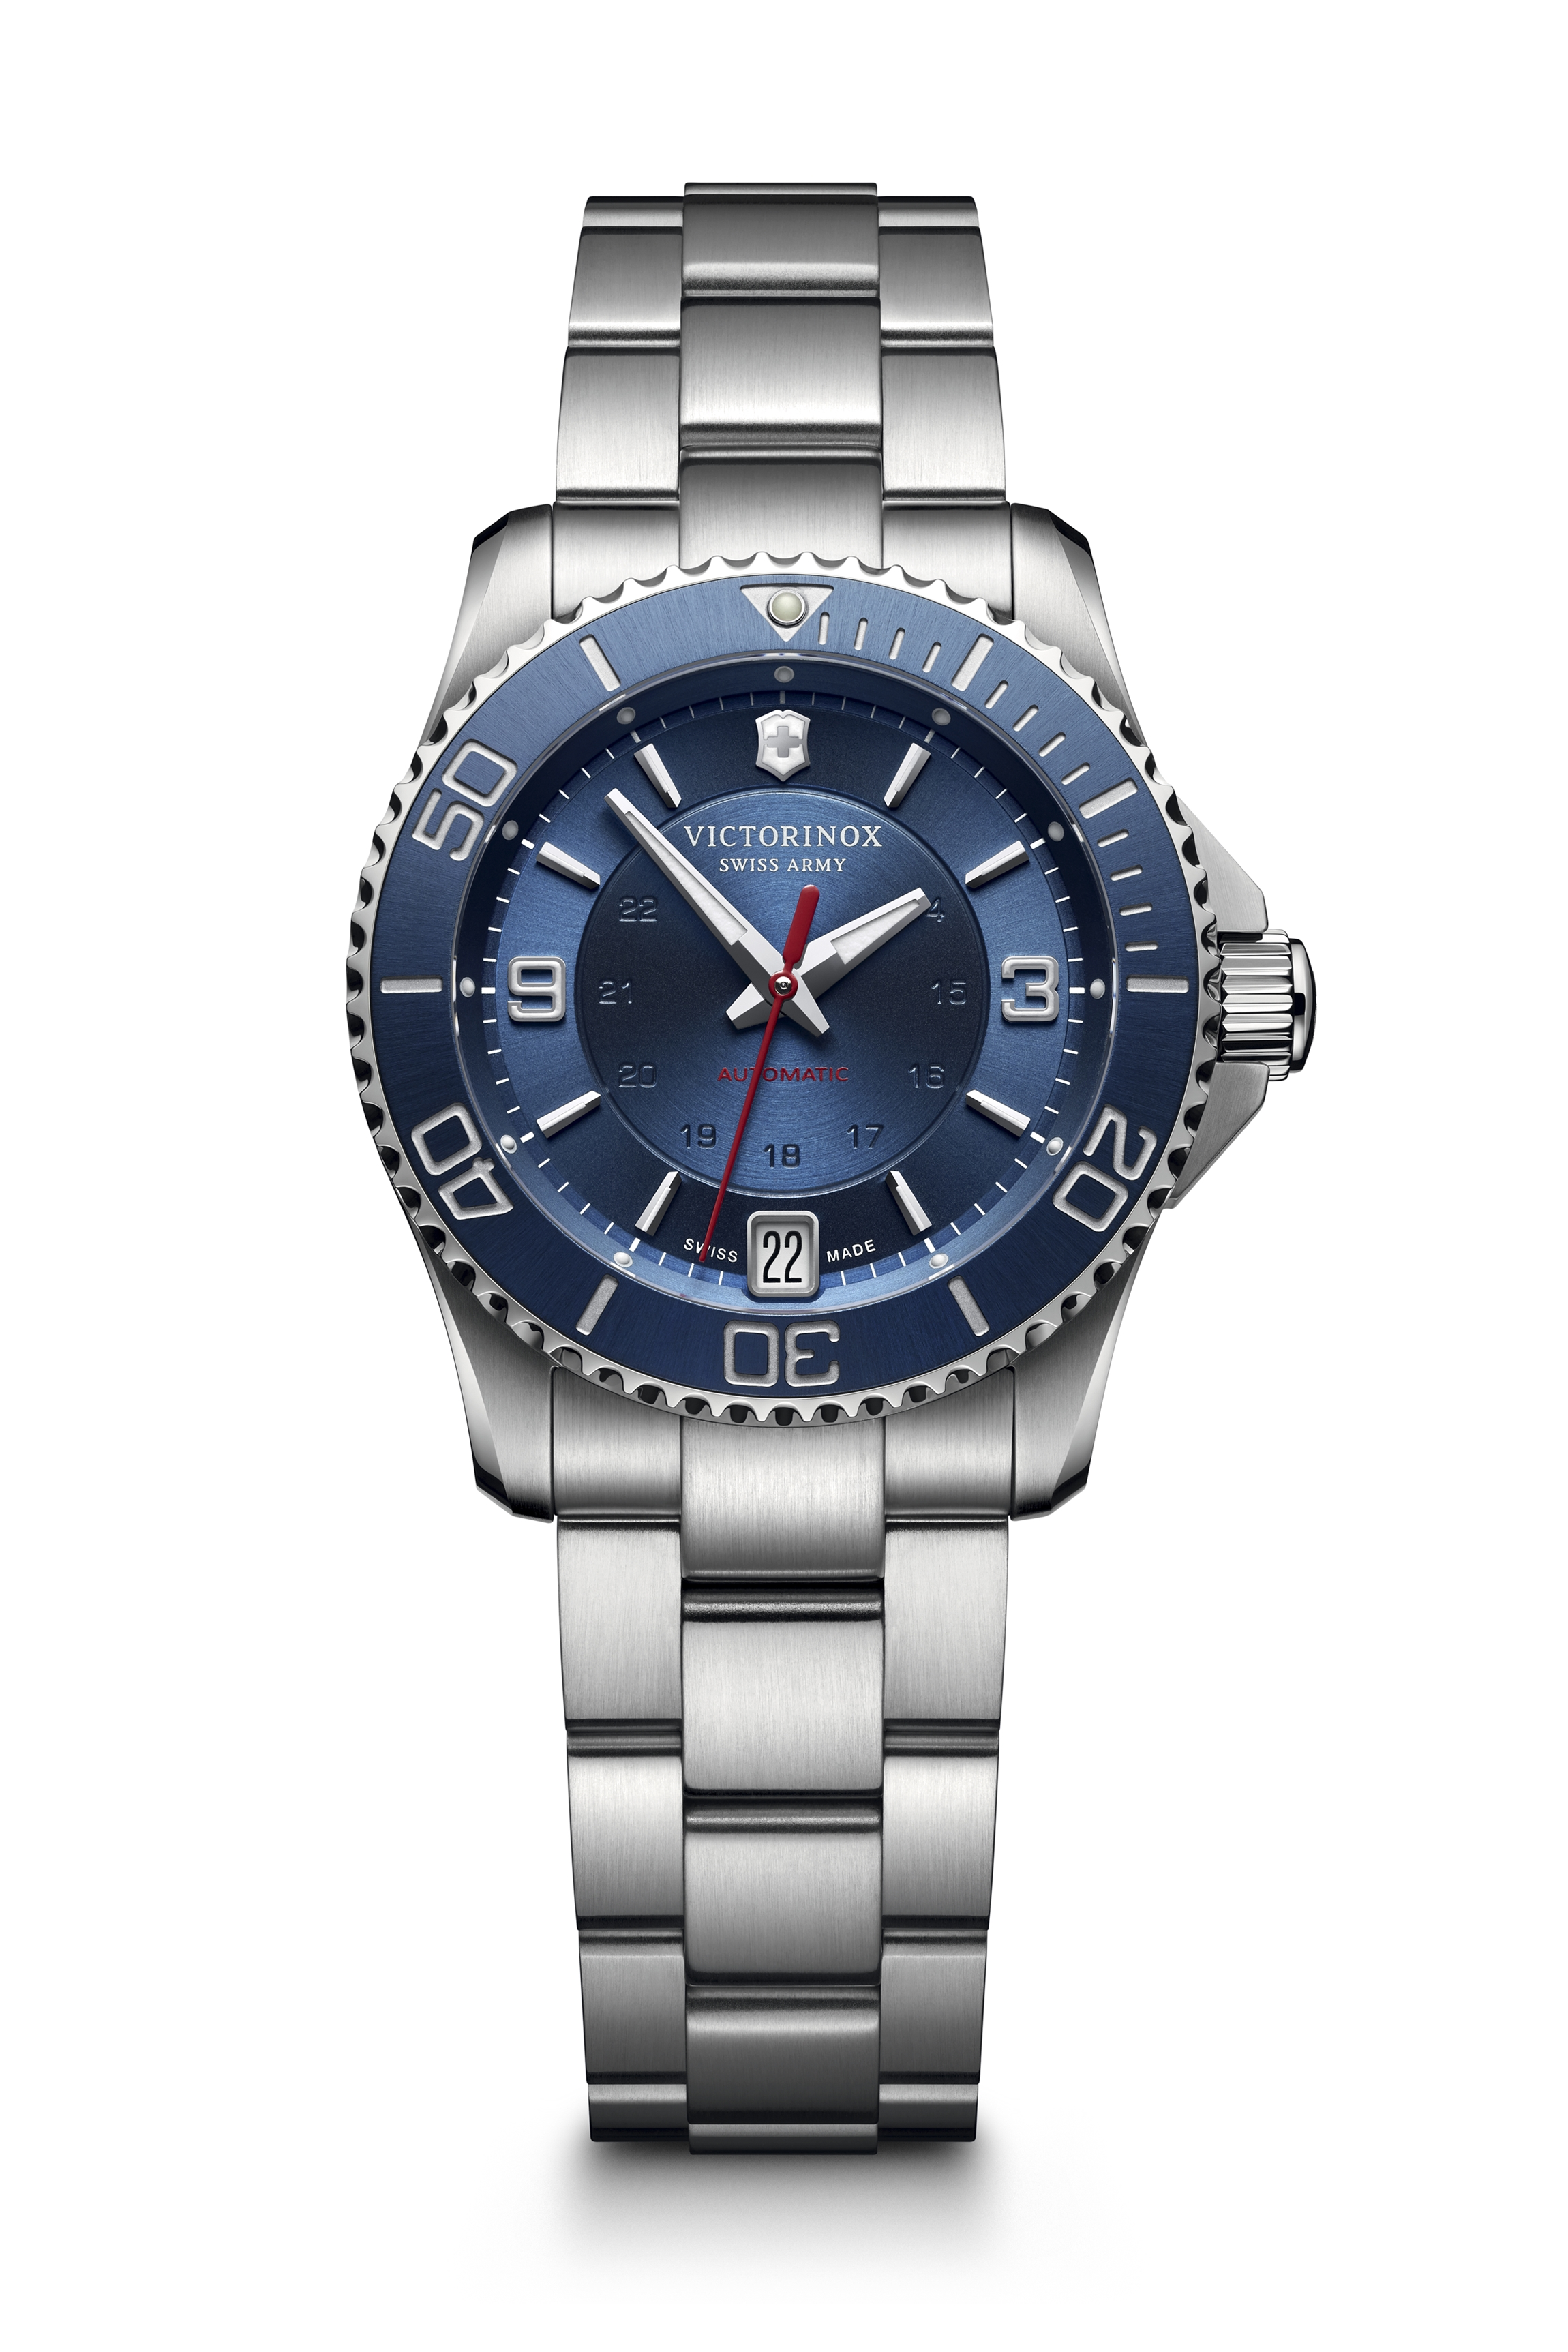 a army first of part picture probably other this squadron says you however is wenger someone img chrono watch hands the when on being watches victorinox swiss likely wrist review